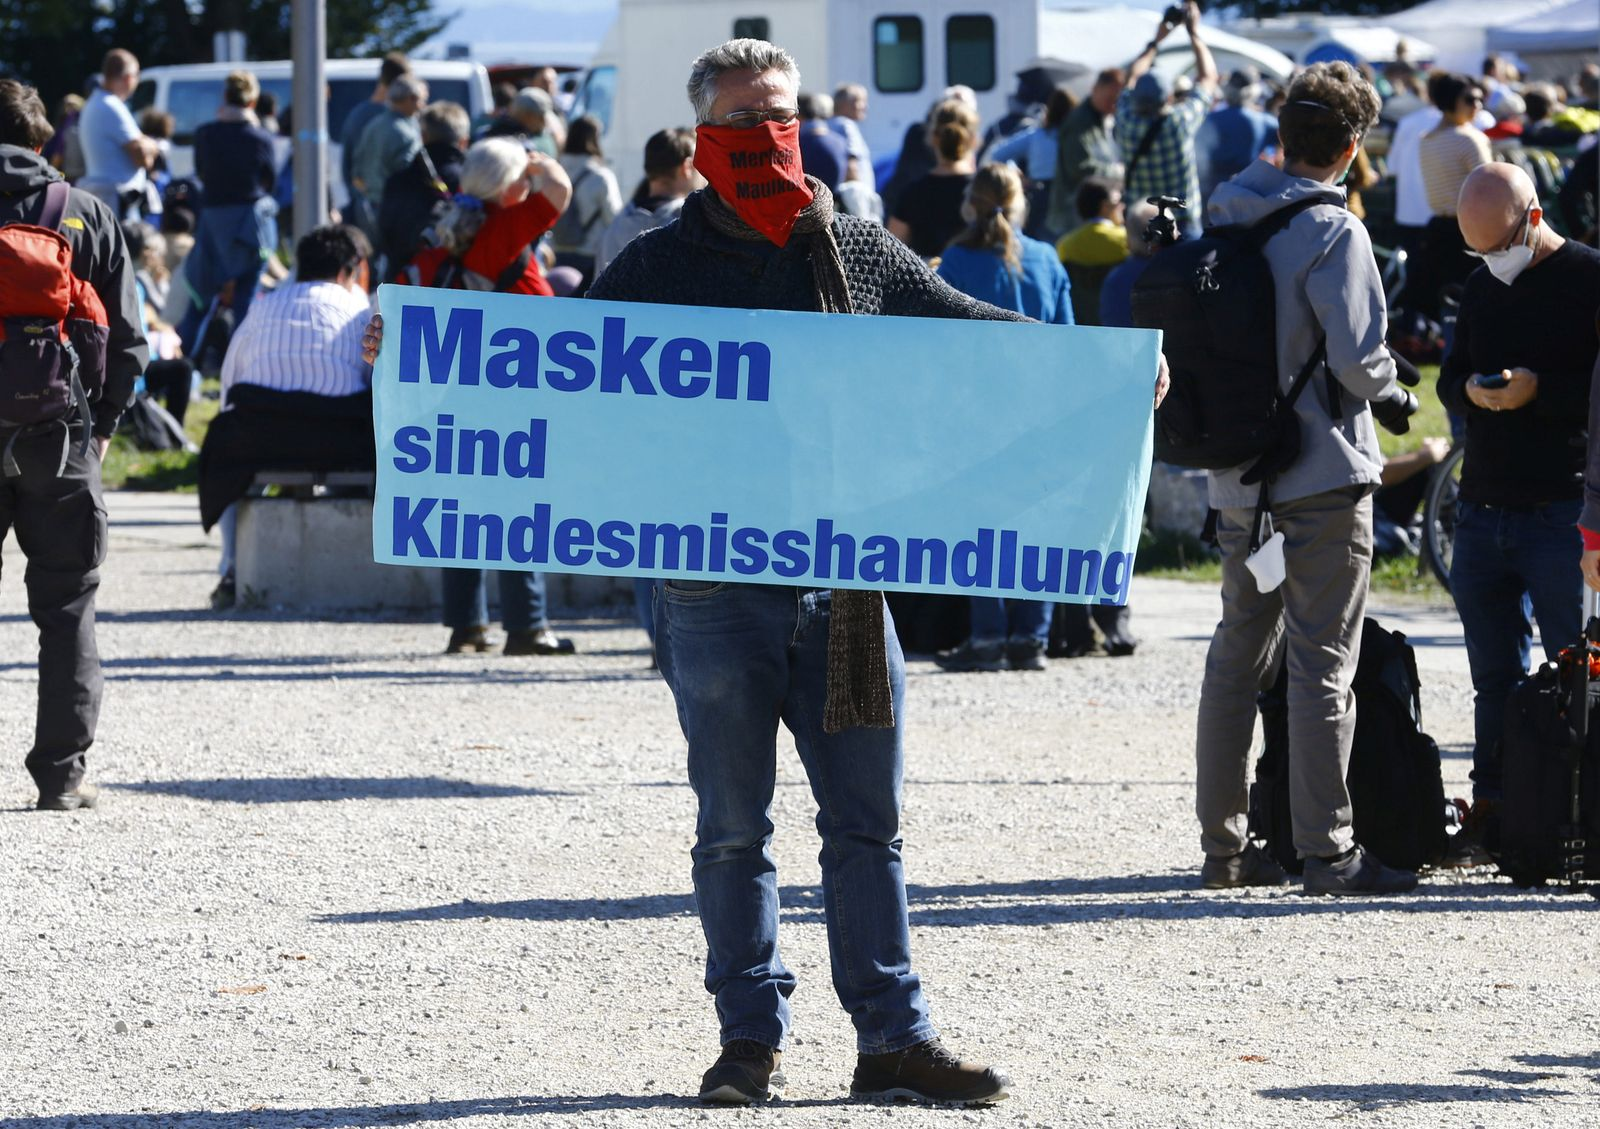 Man displays a poster during a protest against the government's restrictions in Konstanz